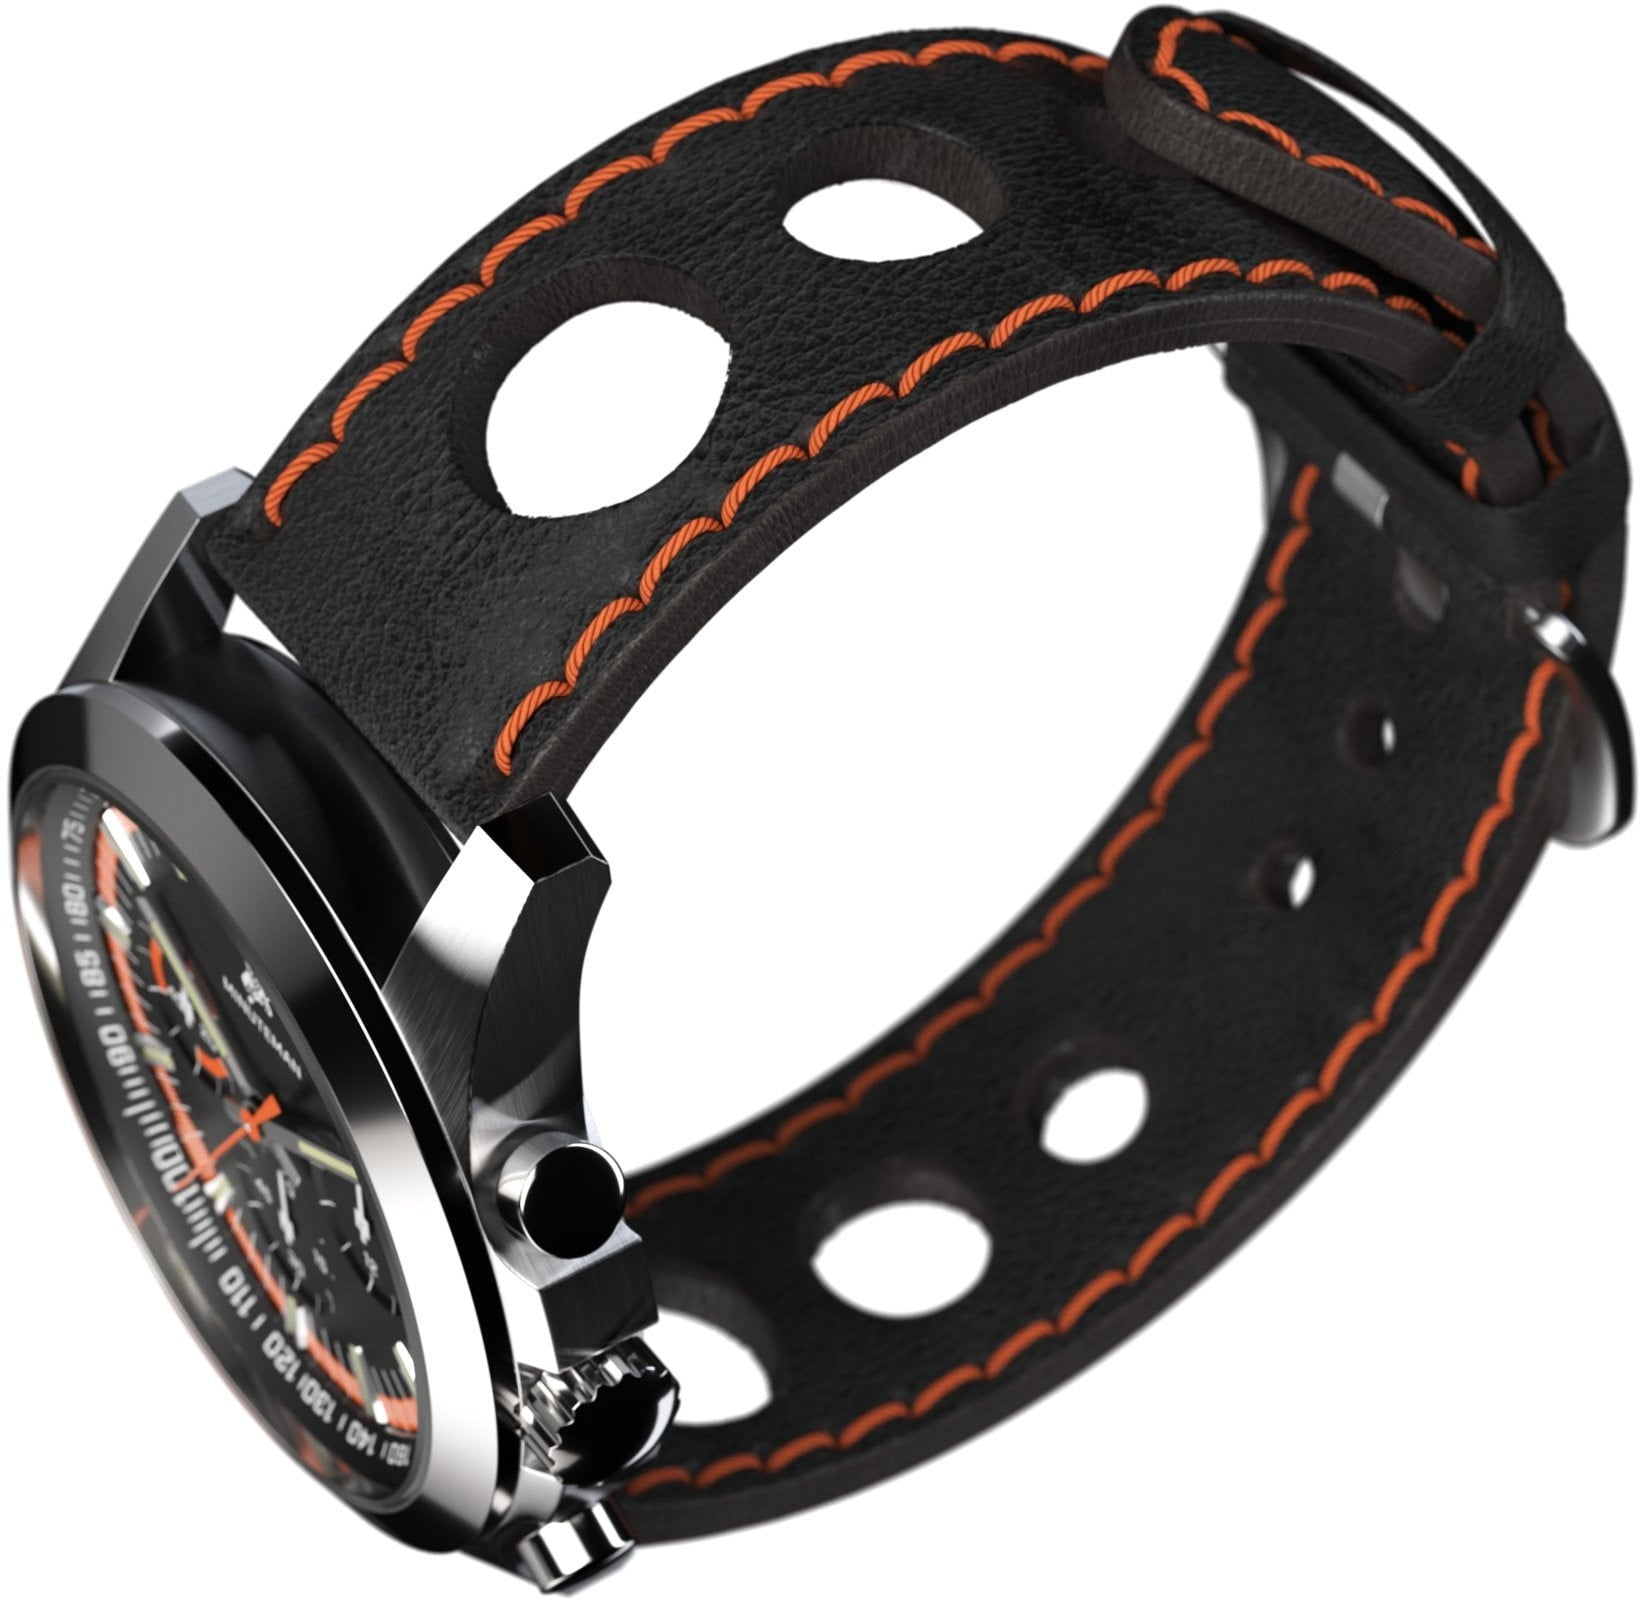 Minuteman Parker Chronograph Wristwatch Black/Orange Dial Brushed (Pre Order) - The CGA Company